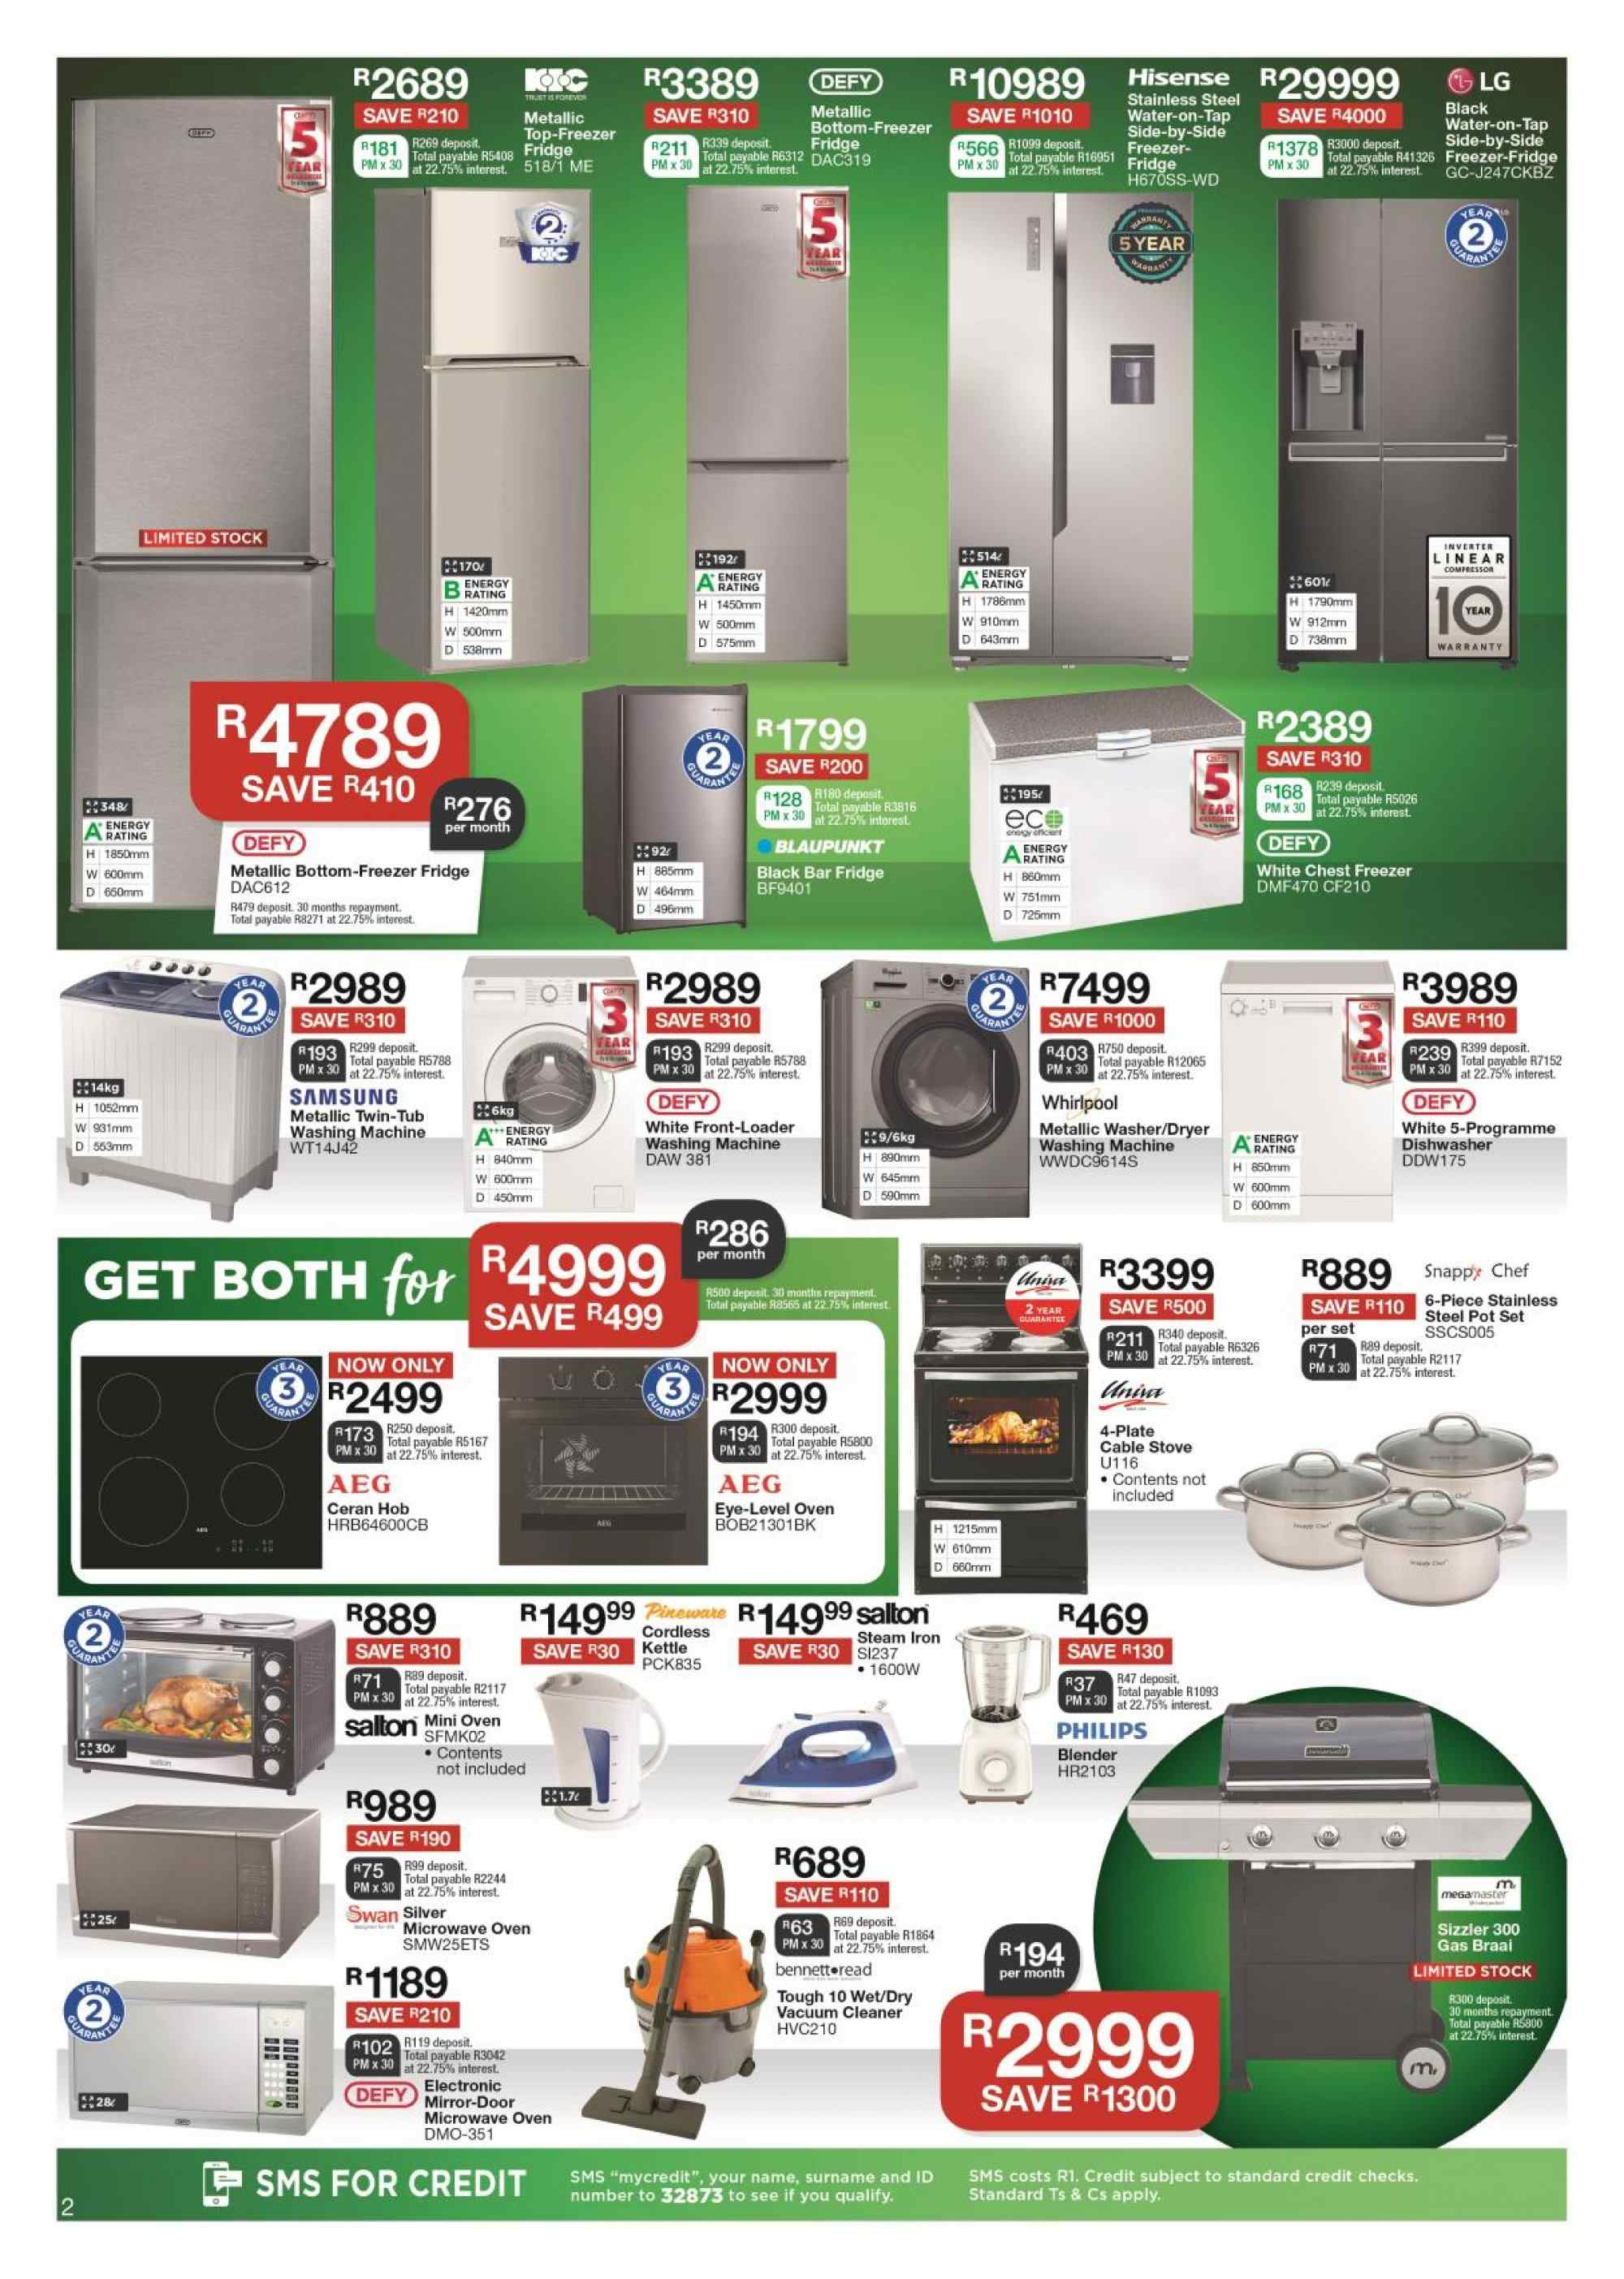 House & Home catalogue  - 02.26.2019 - 03.10.2019. Page 2.